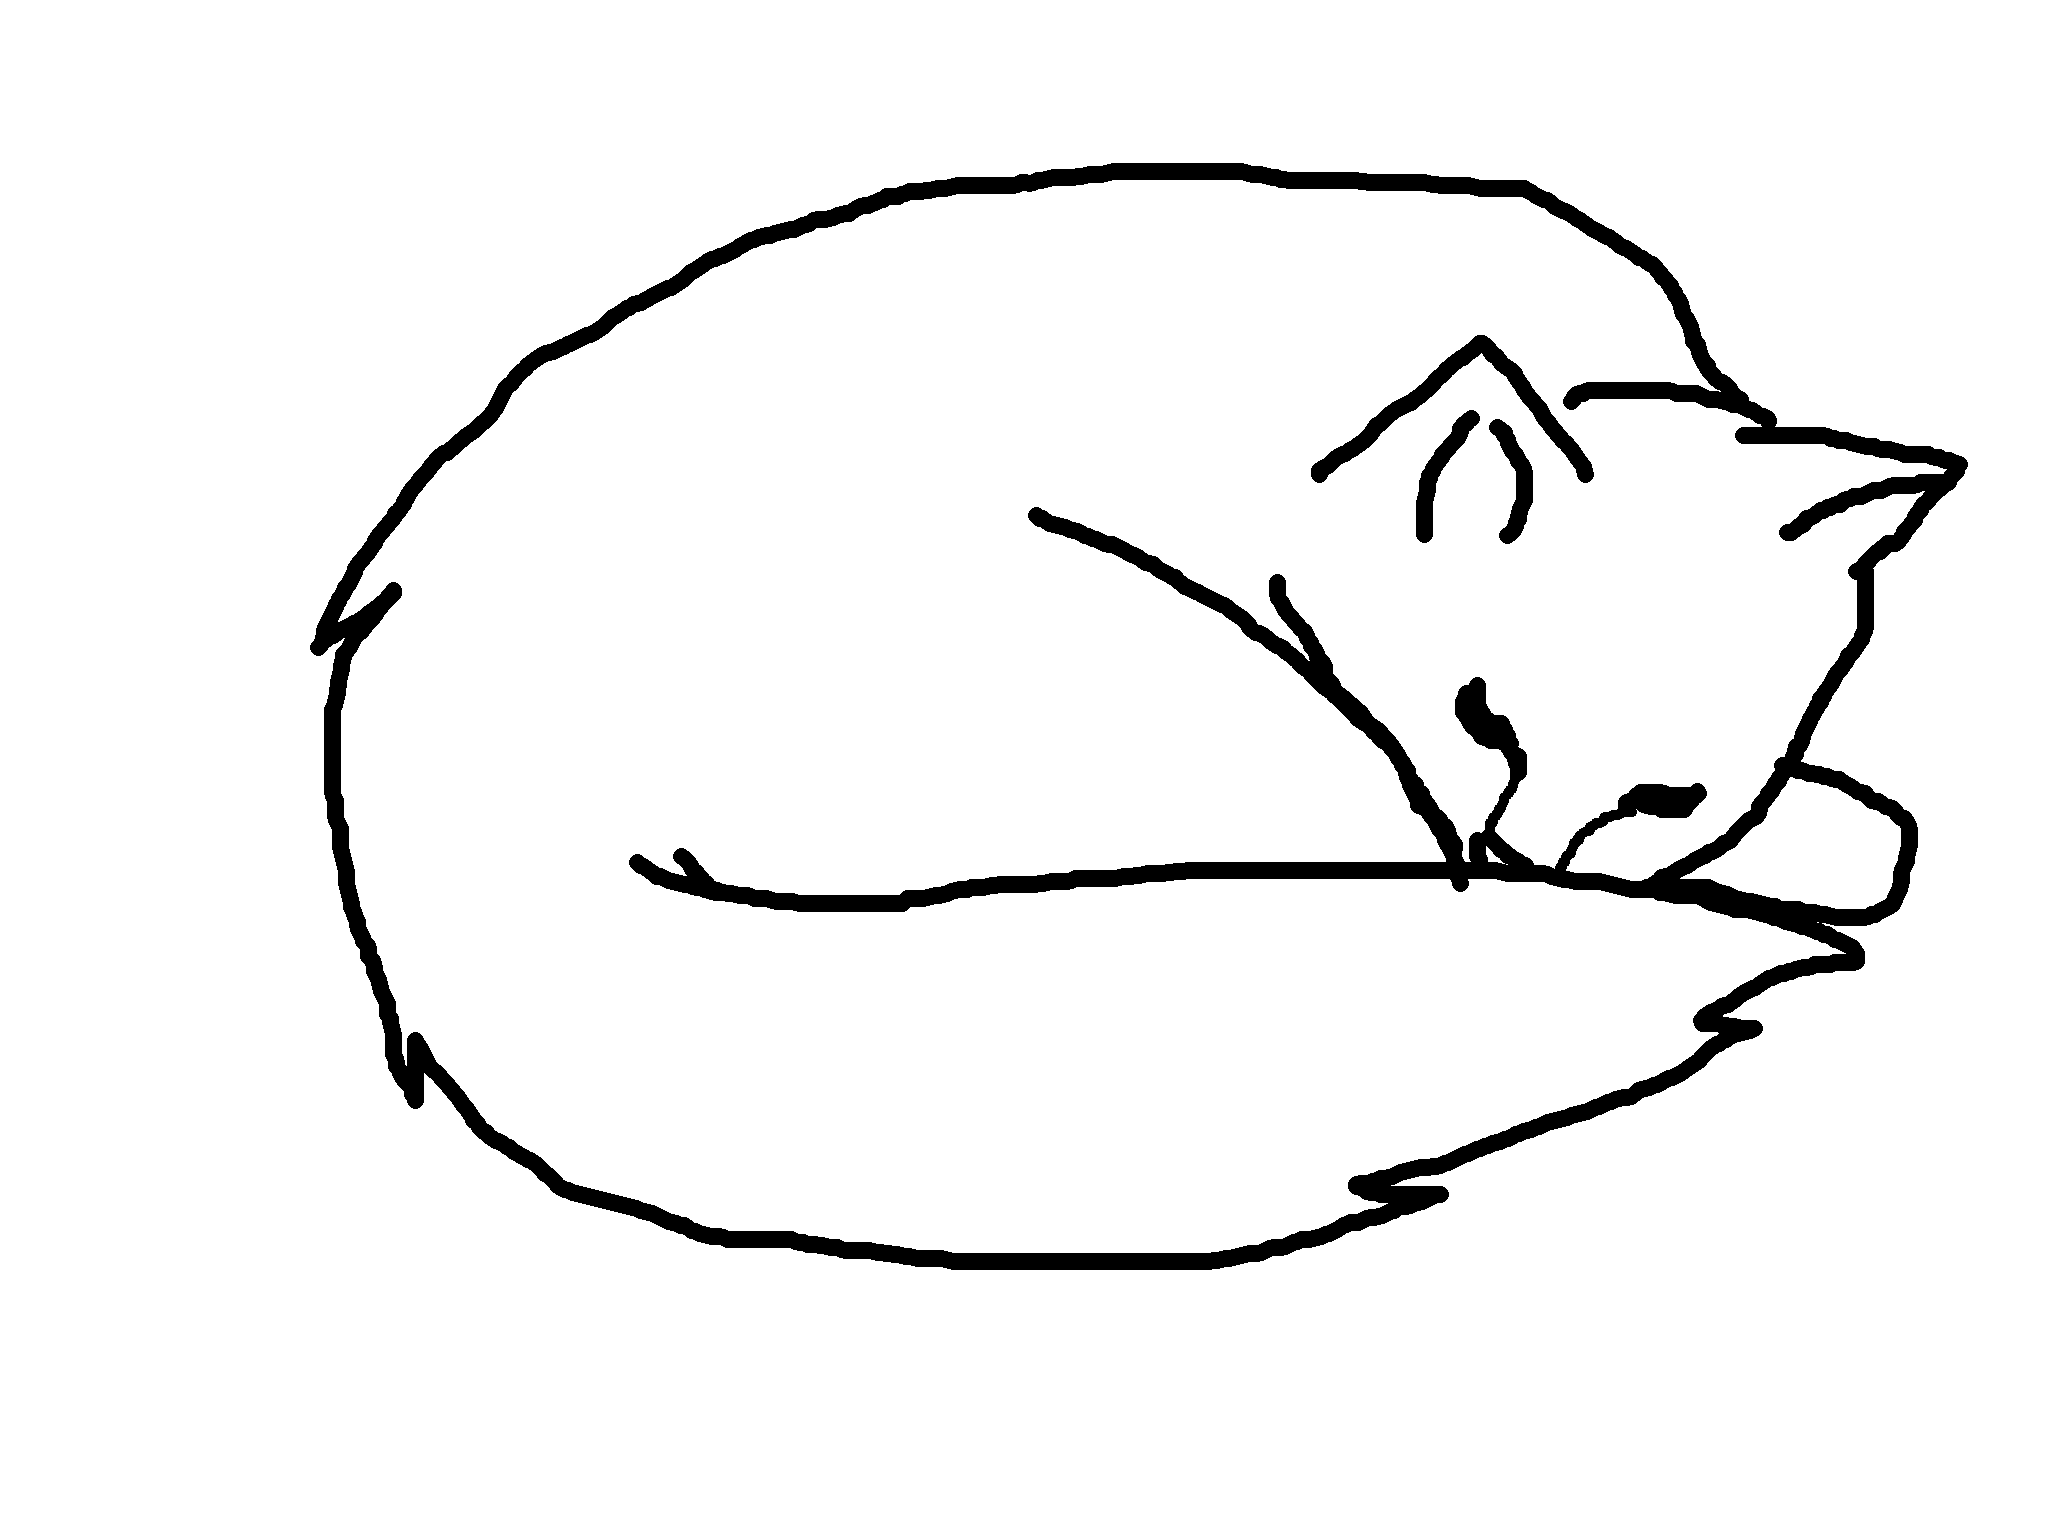 Real cat drawing clipart image royalty free library Real cat drawing clipart - ClipartFest image royalty free library